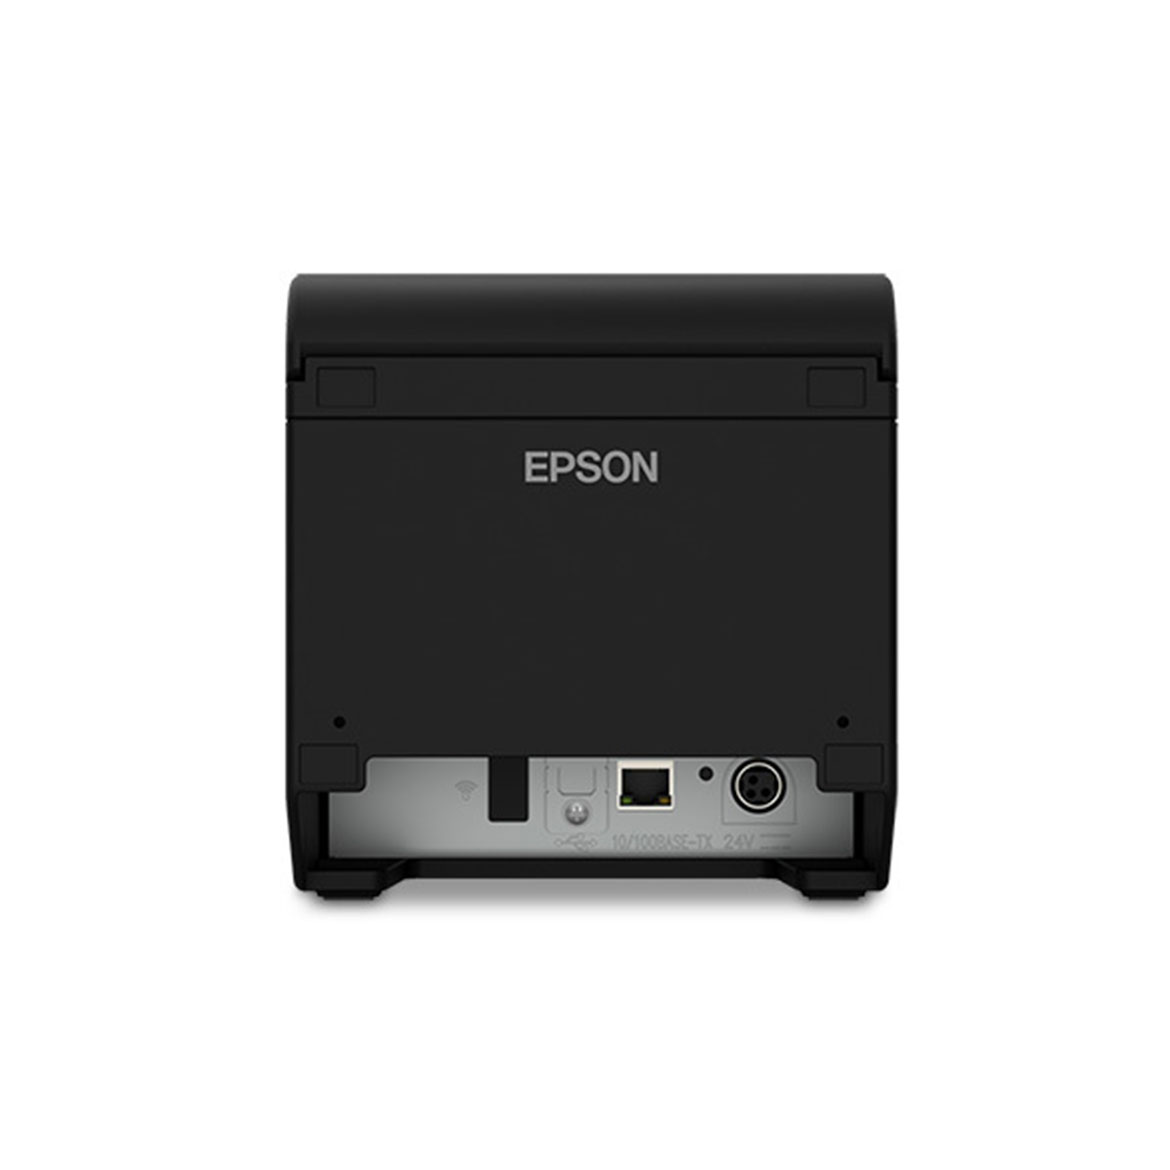 Epson Tm-T20III Thermal receipt printer ther back